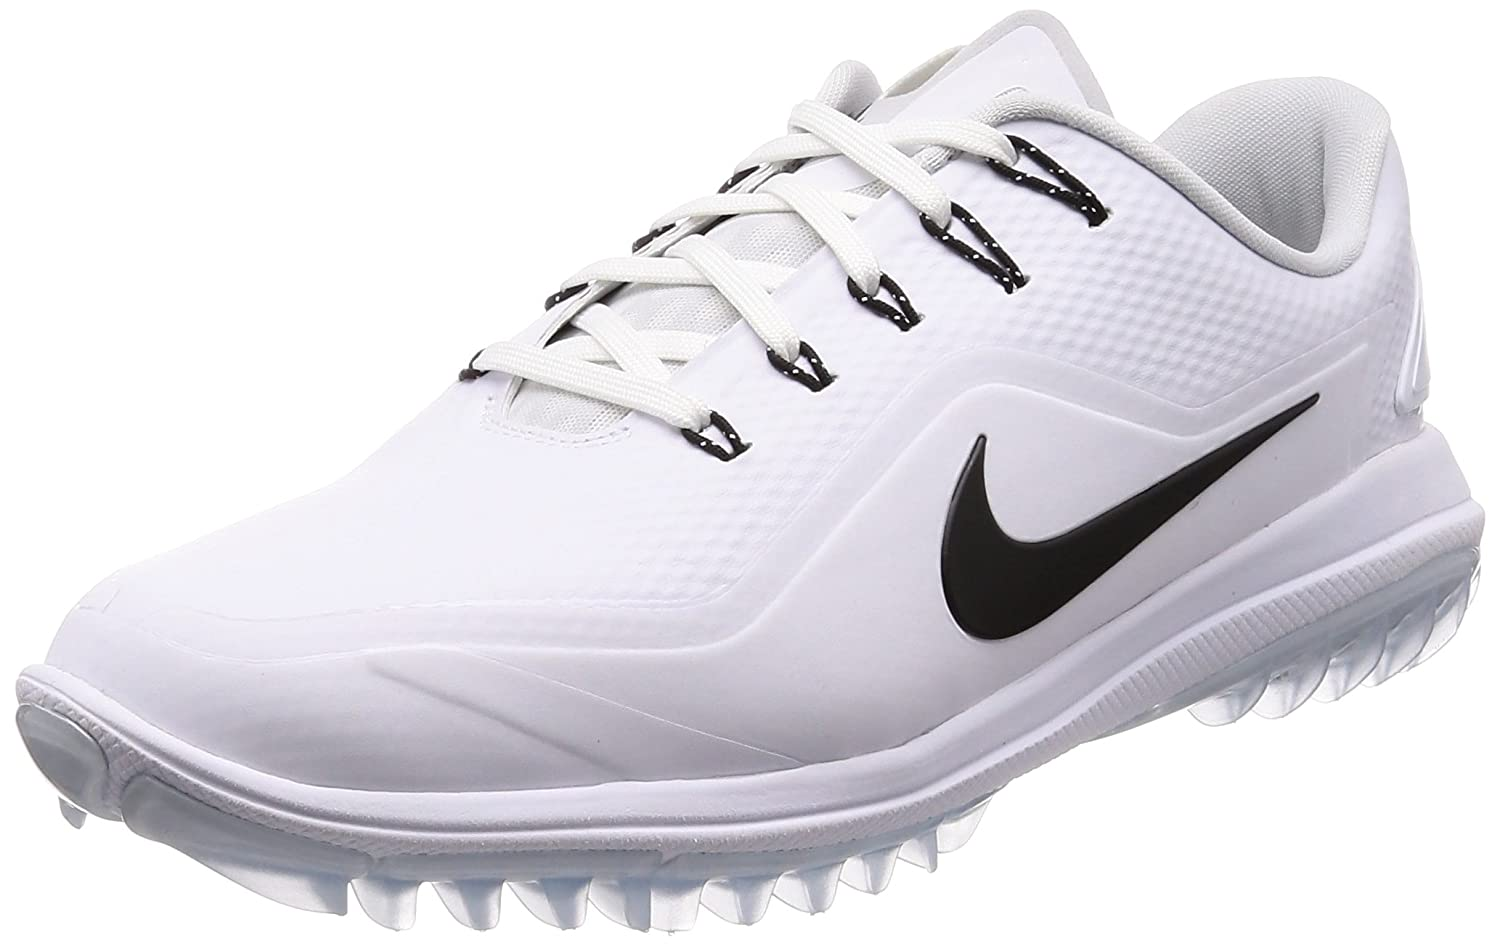 first rate 11558 f87ff Amazon.com  Nike Men s Lunar Control Vapor 2 Golf Shoes White Black 8.5 W   Sports   Outdoors